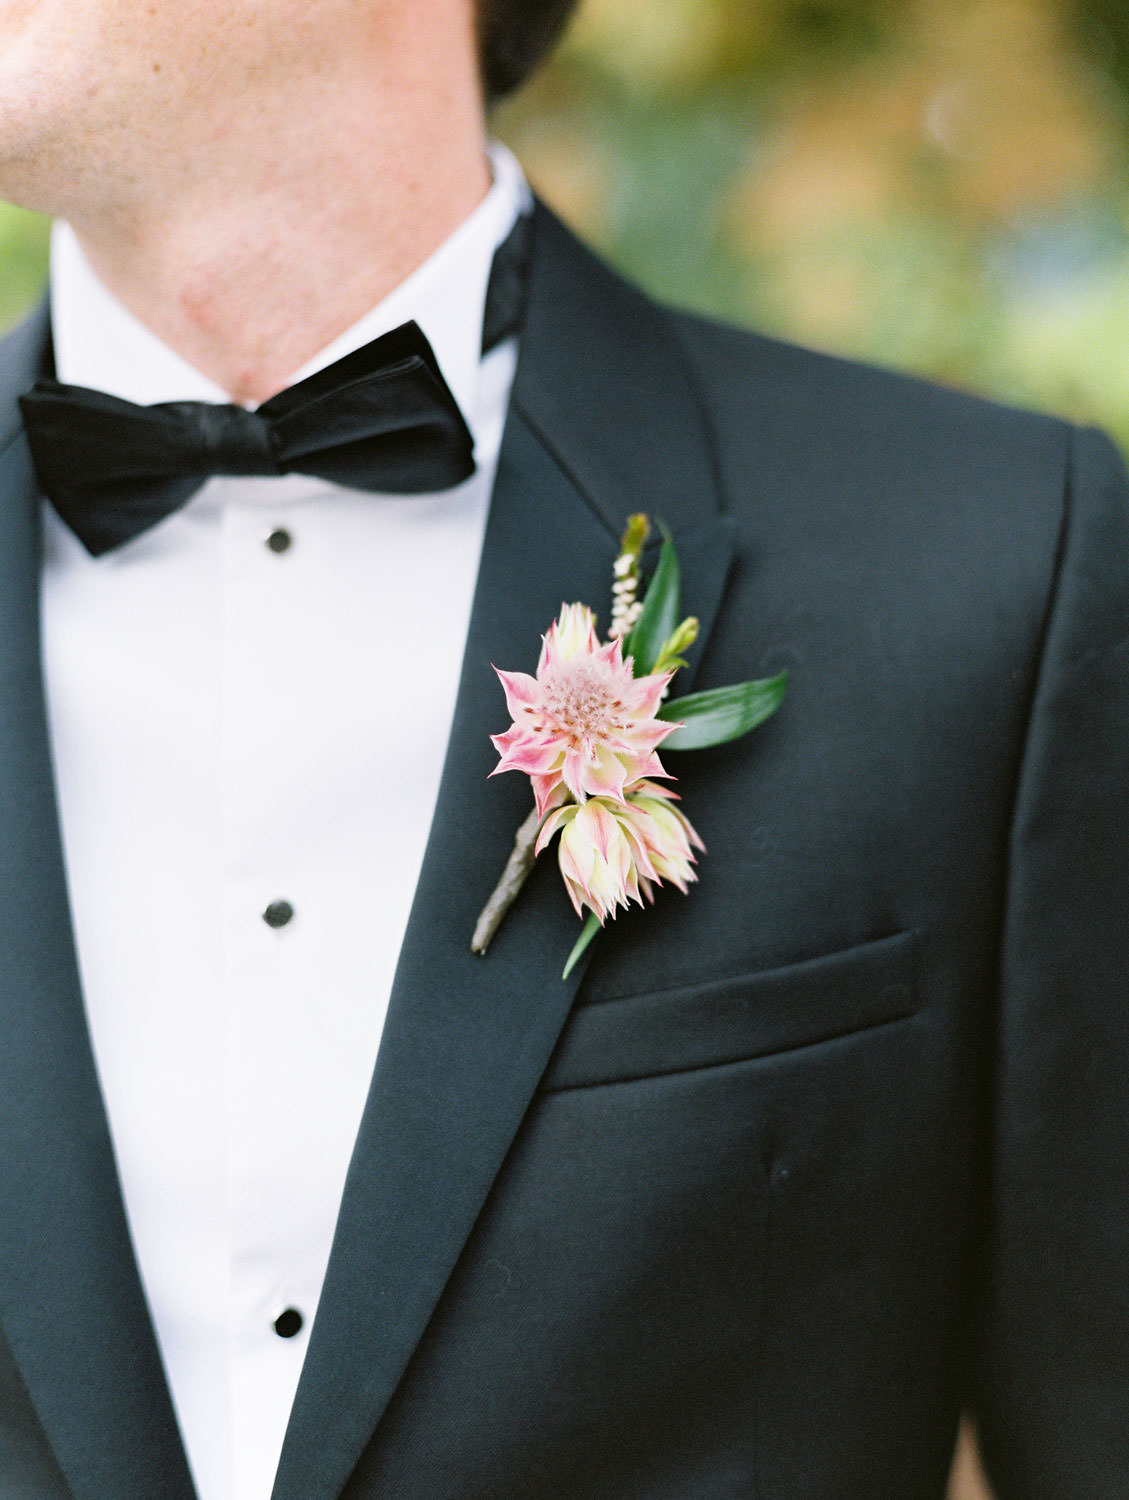 Groom boutonniere with pink and green on black tux at Green Acre Campus Pointe Wedding, film photo by Cavin Elizabeth Photography